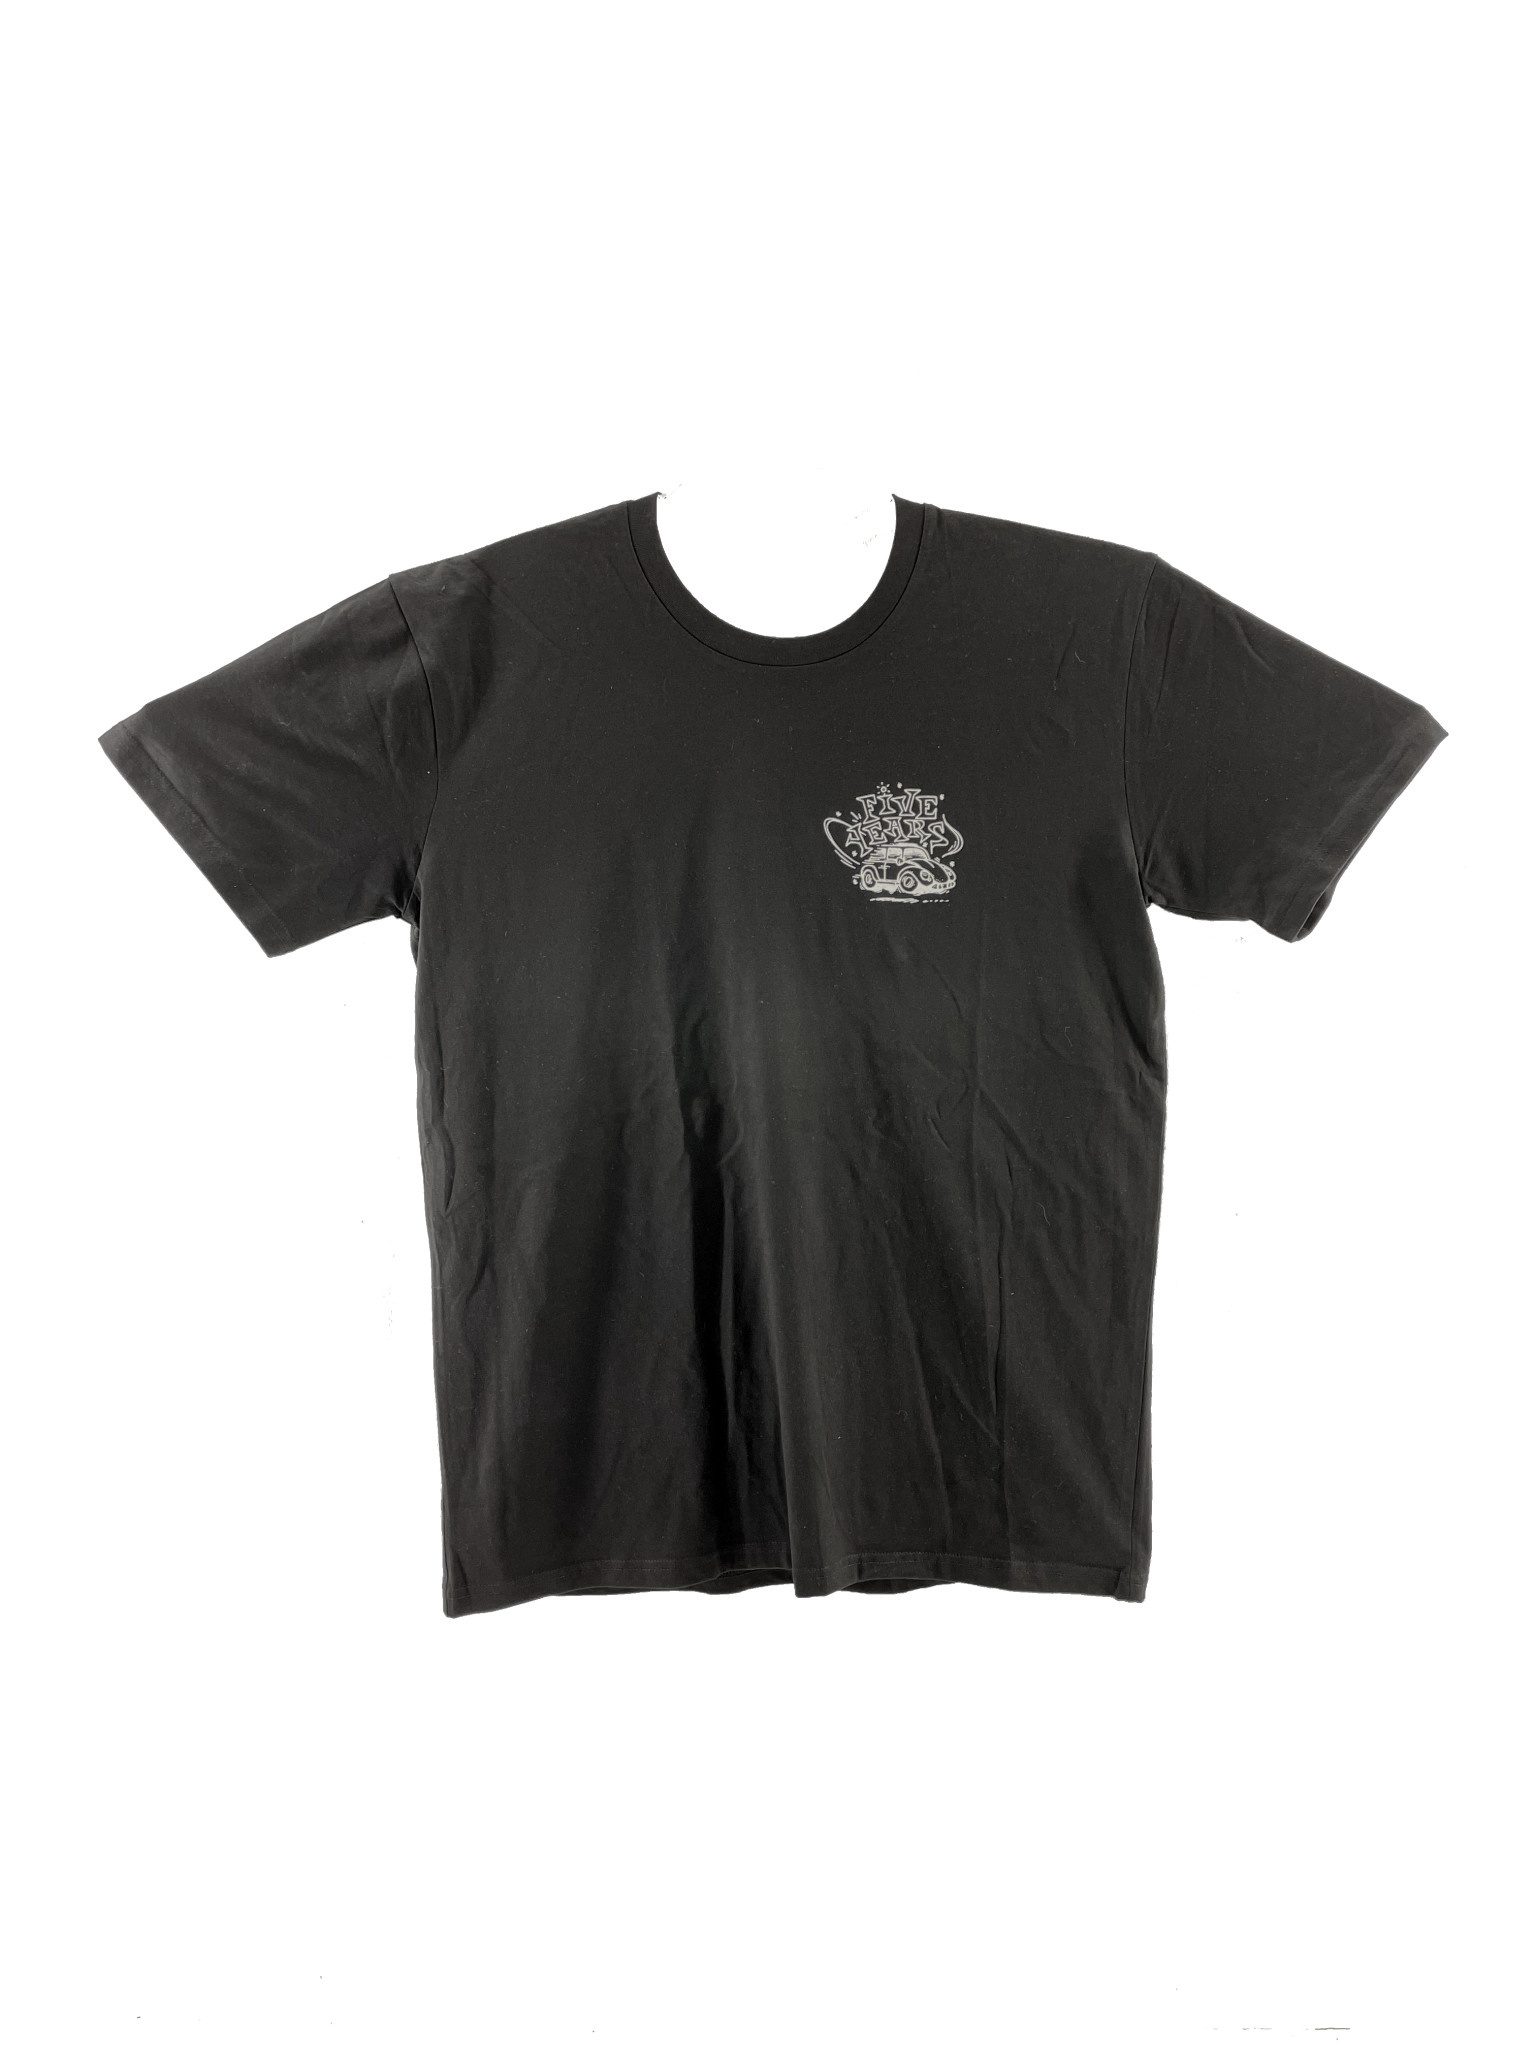 The Point The Point - 5 Years Black Shirt